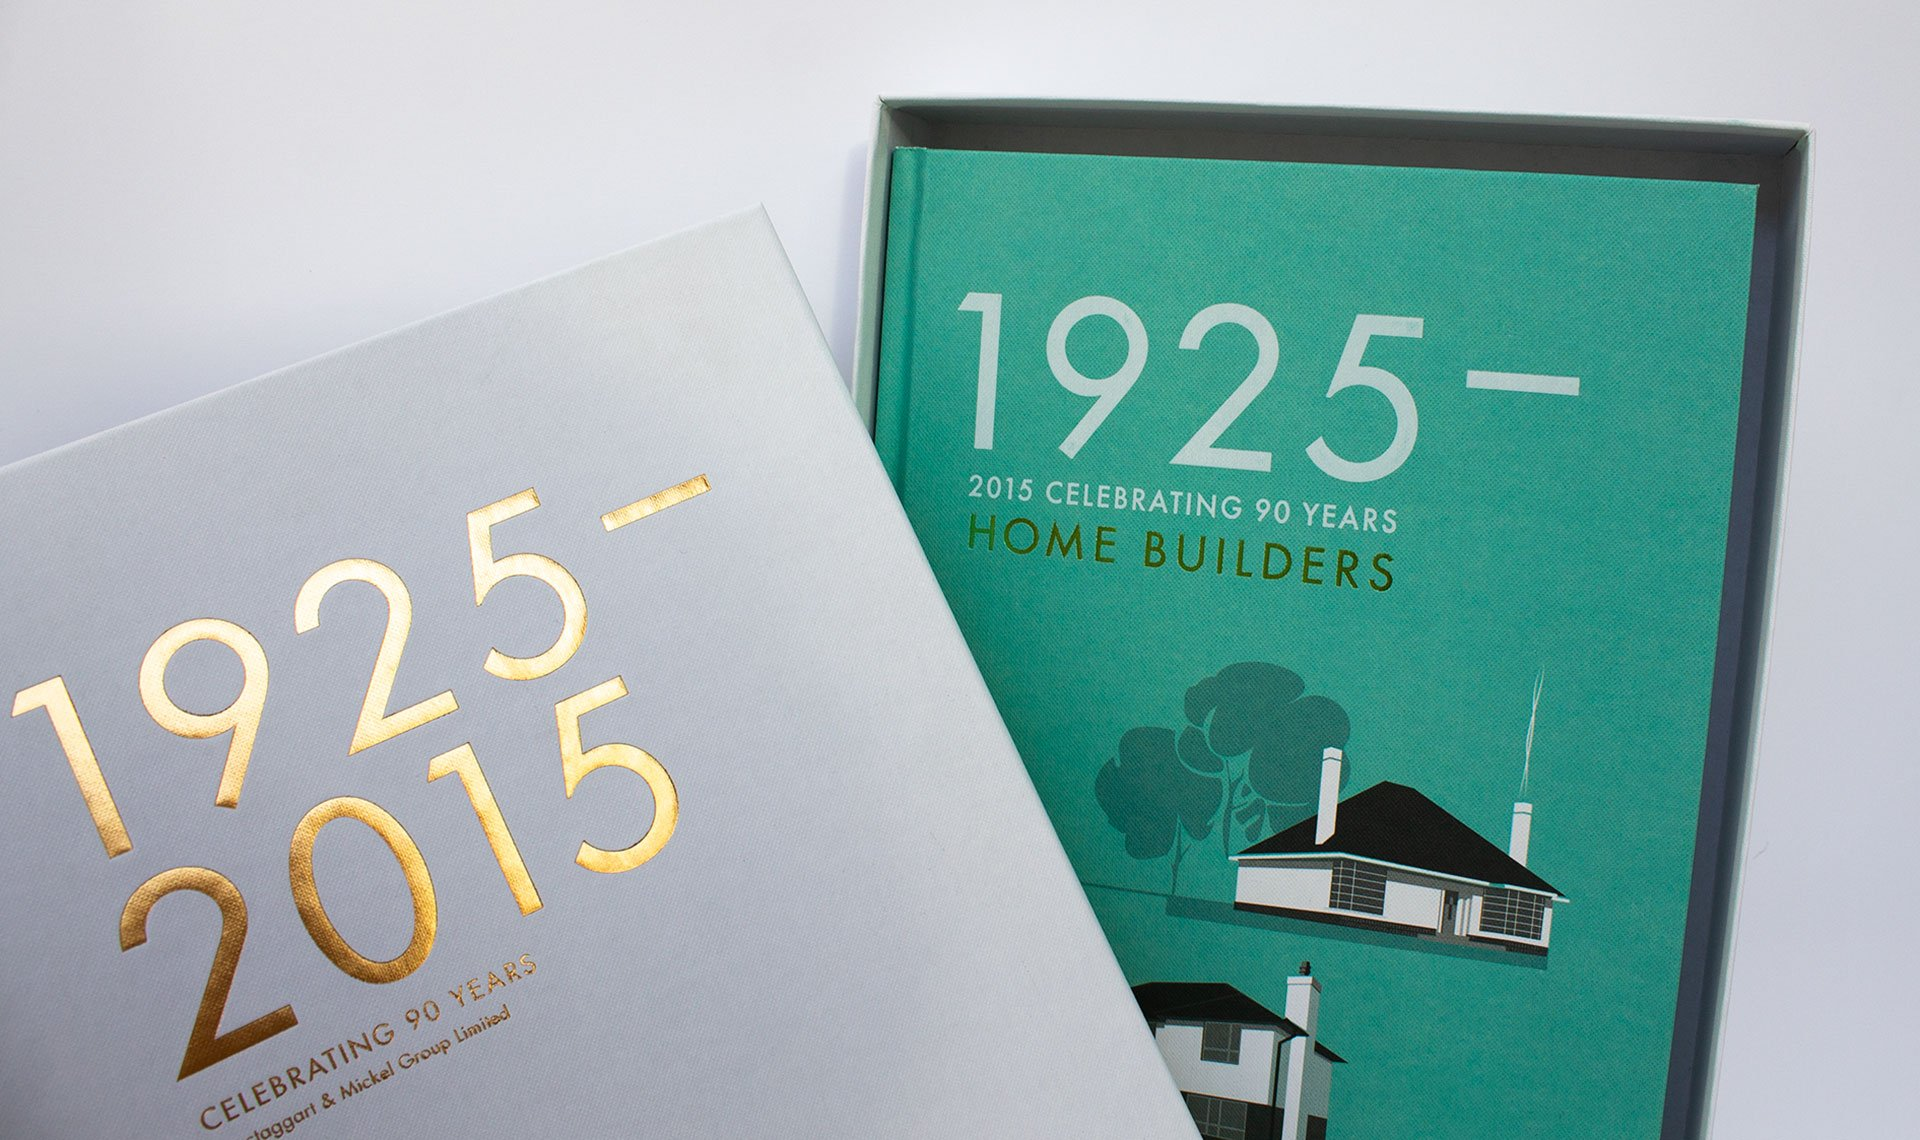 Home Builders book cover design